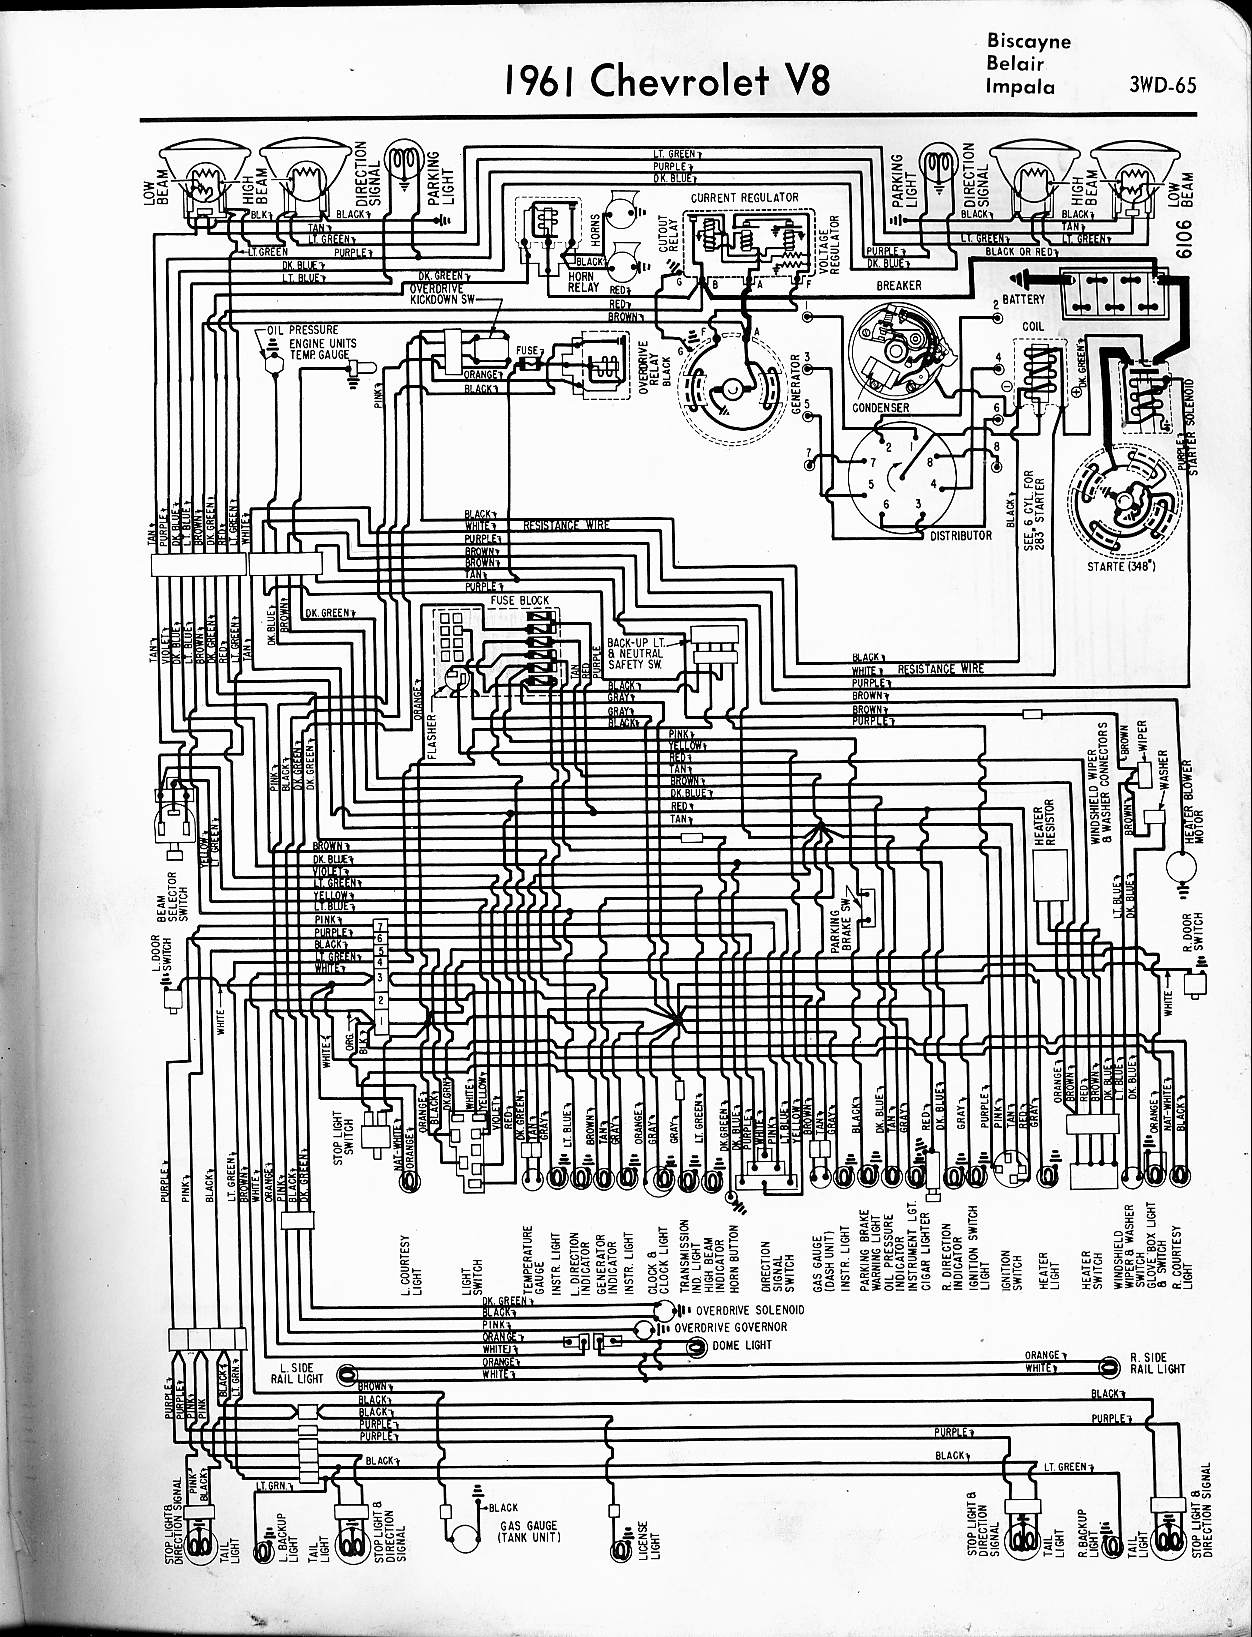 Mwirechev Wd on 1959 Bel Air Wiring Diagram